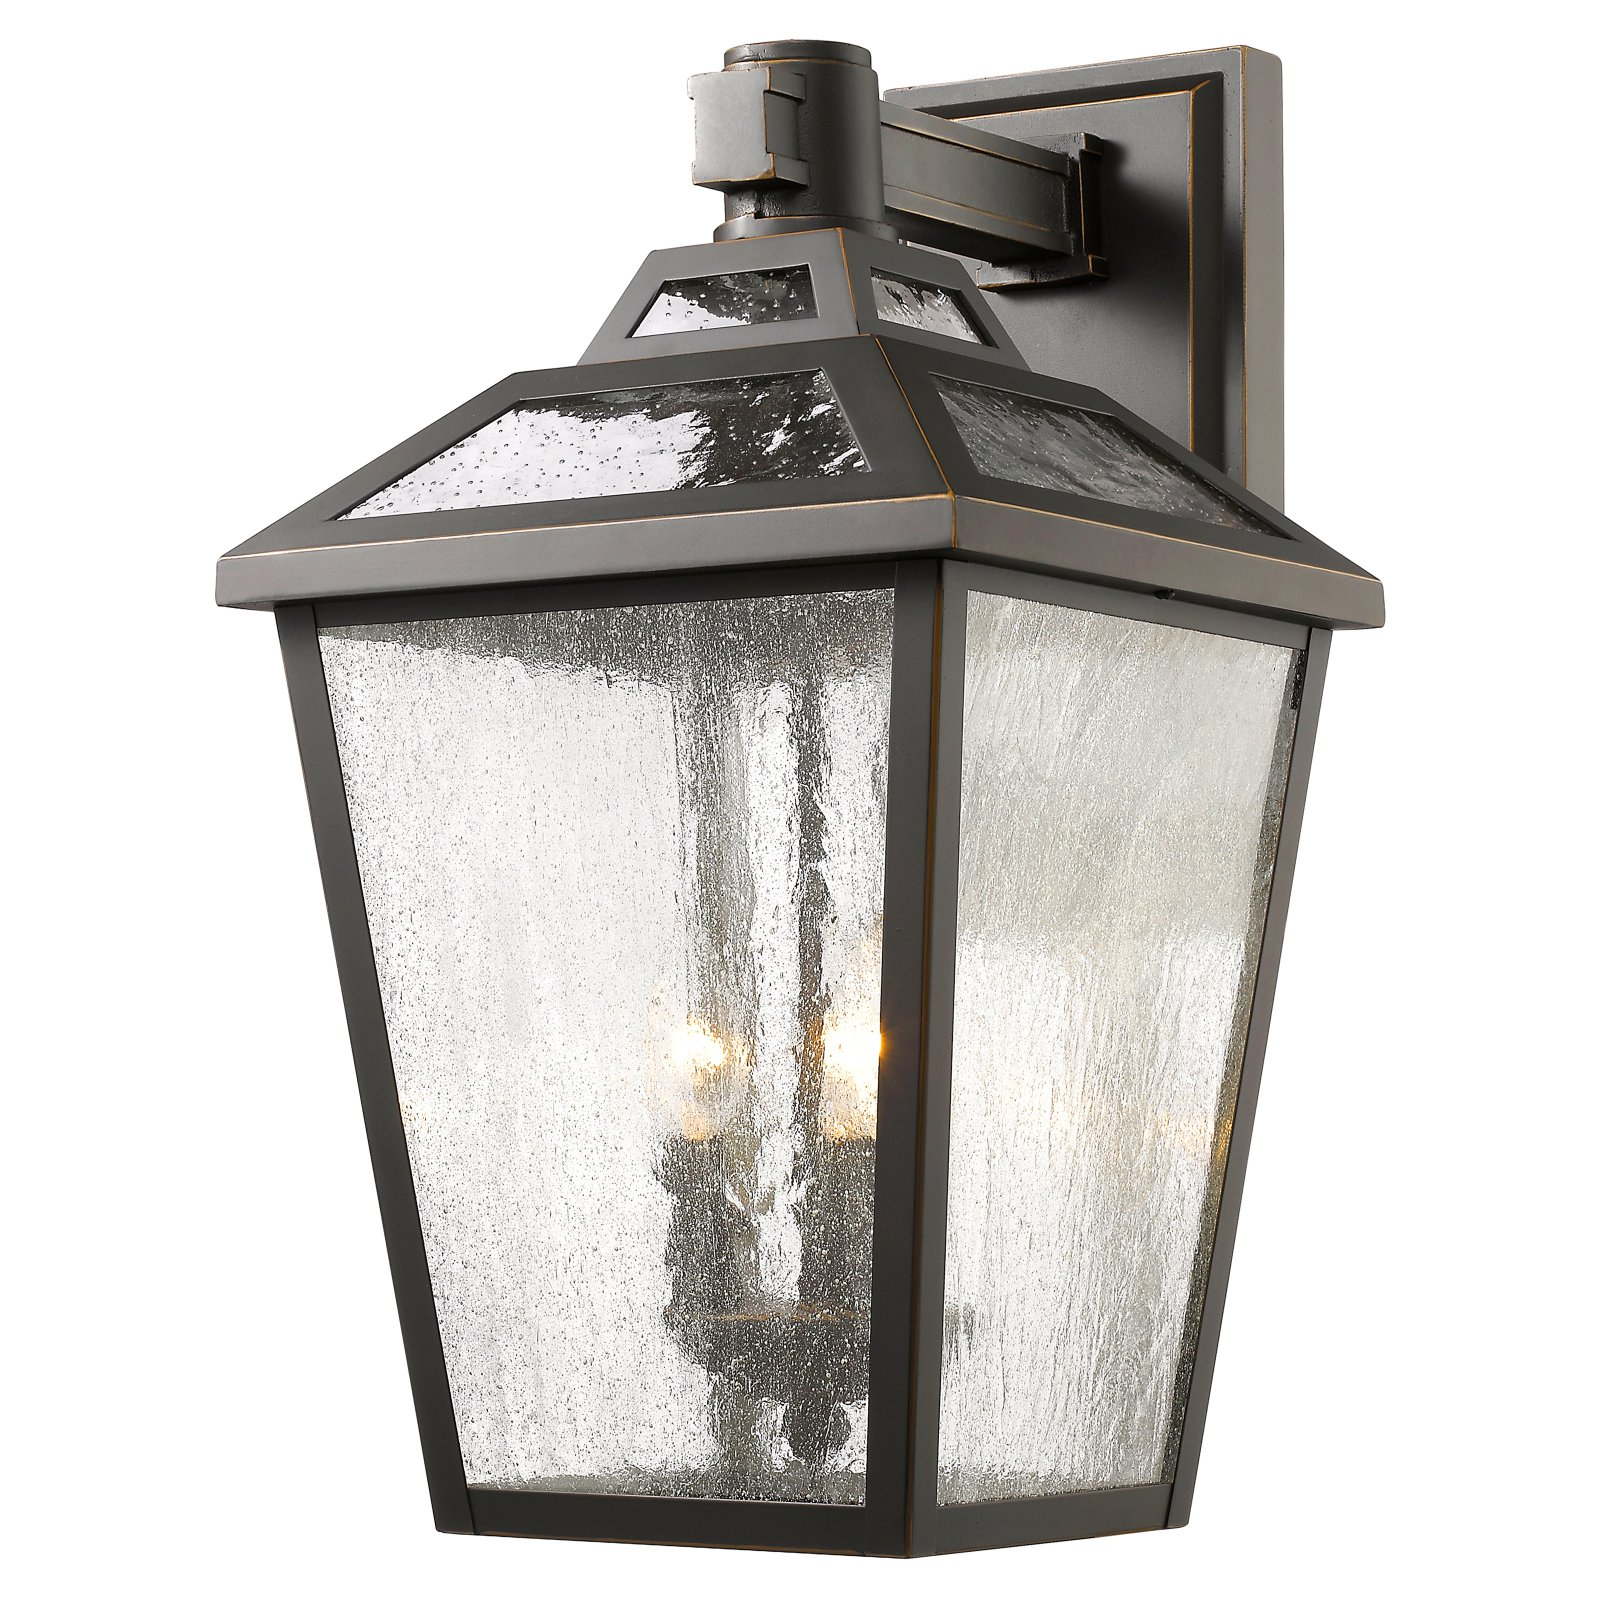 Z-Lite Bayland Outdoor 3-Light Wall Sconce, Oil Rubbed Bronze by Z-Lite